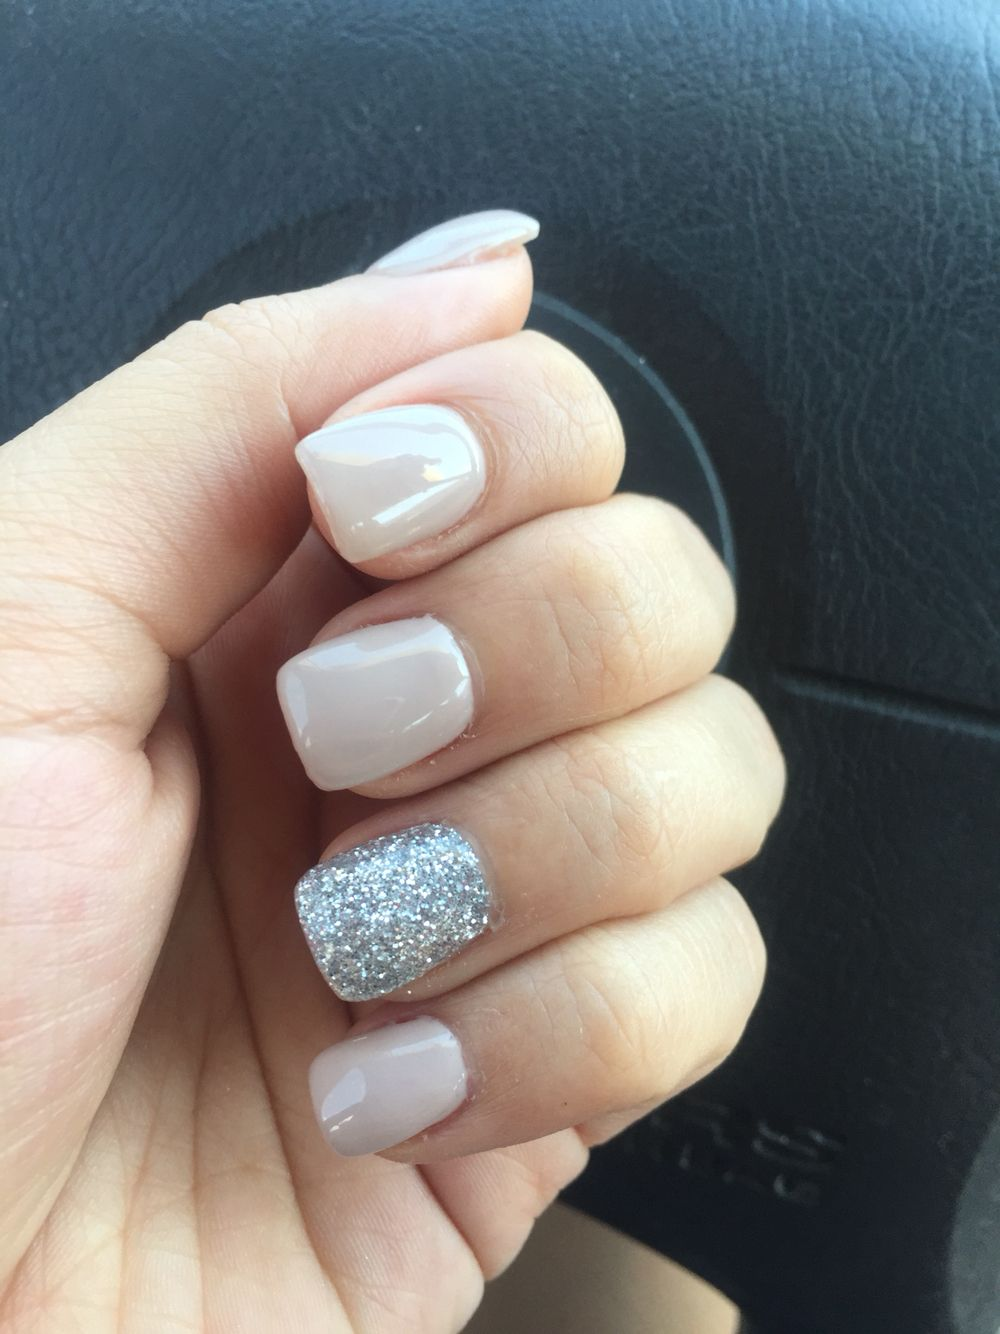 And Silver Glitter Nails